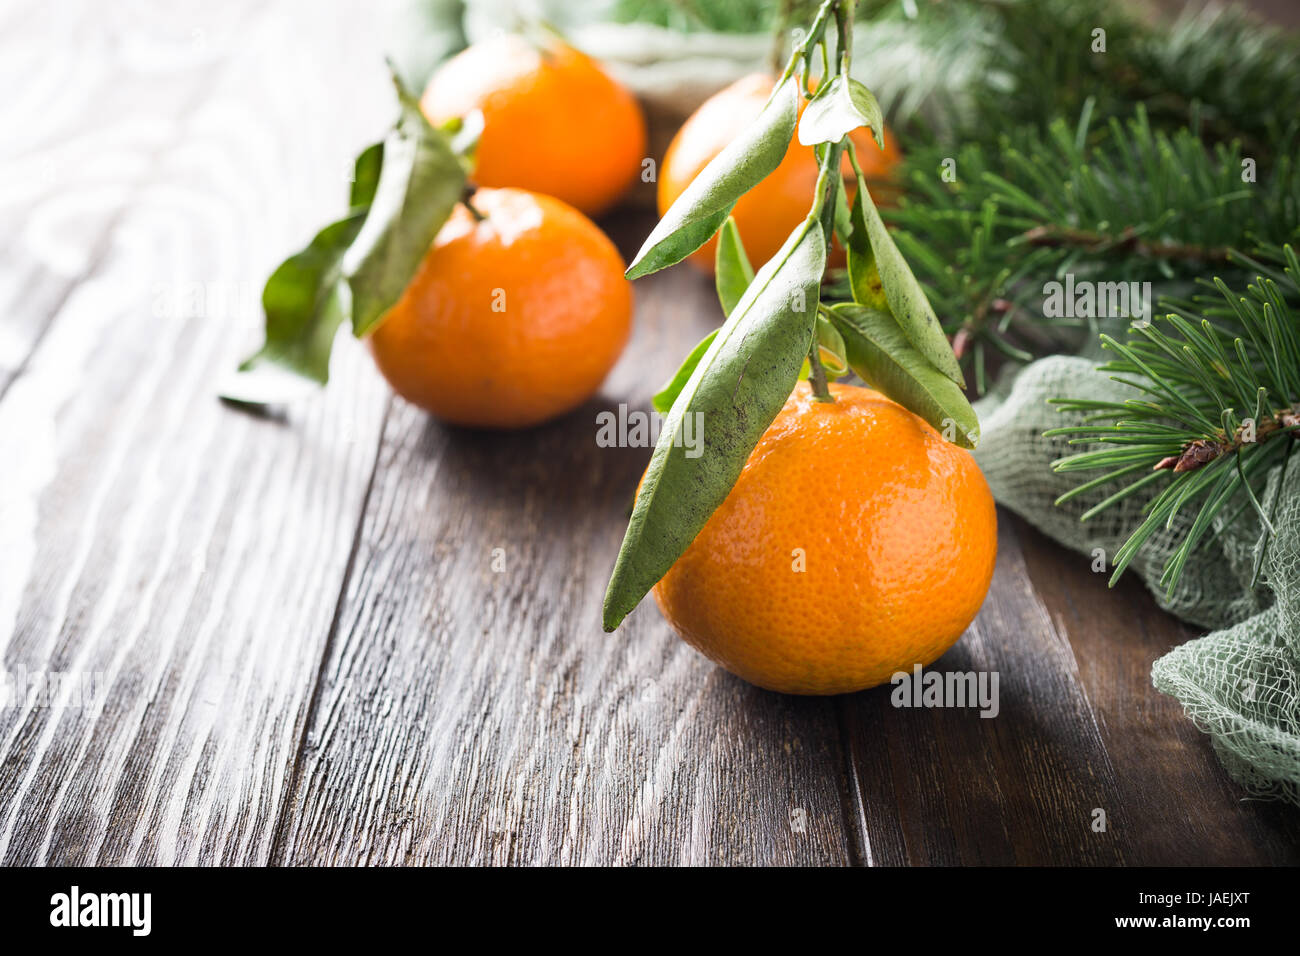 Fresh tangerines with leaves and ripe mandarins on wooden table - Stock Image